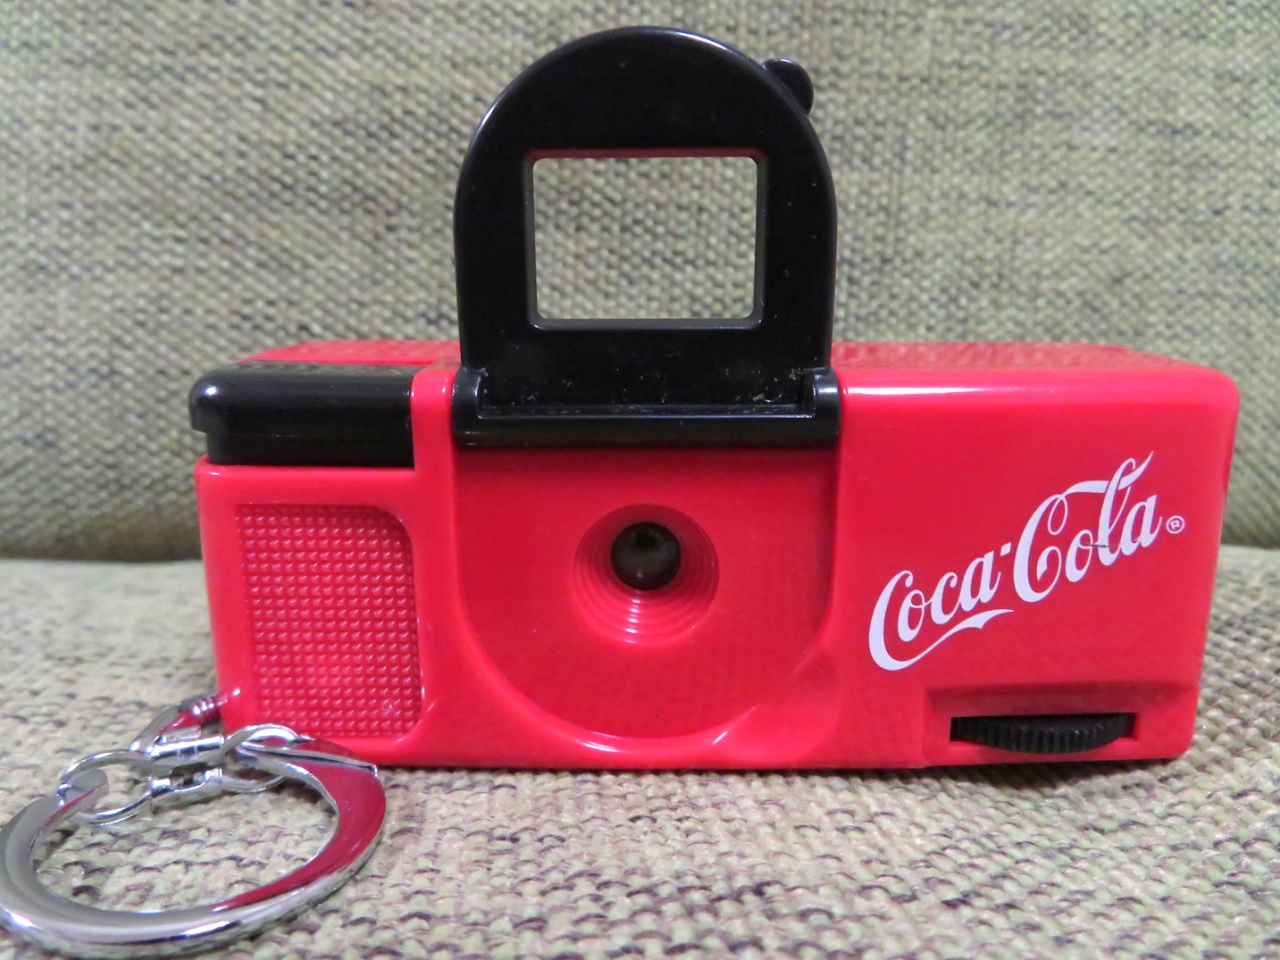 Coca-Cola Keychain Camera